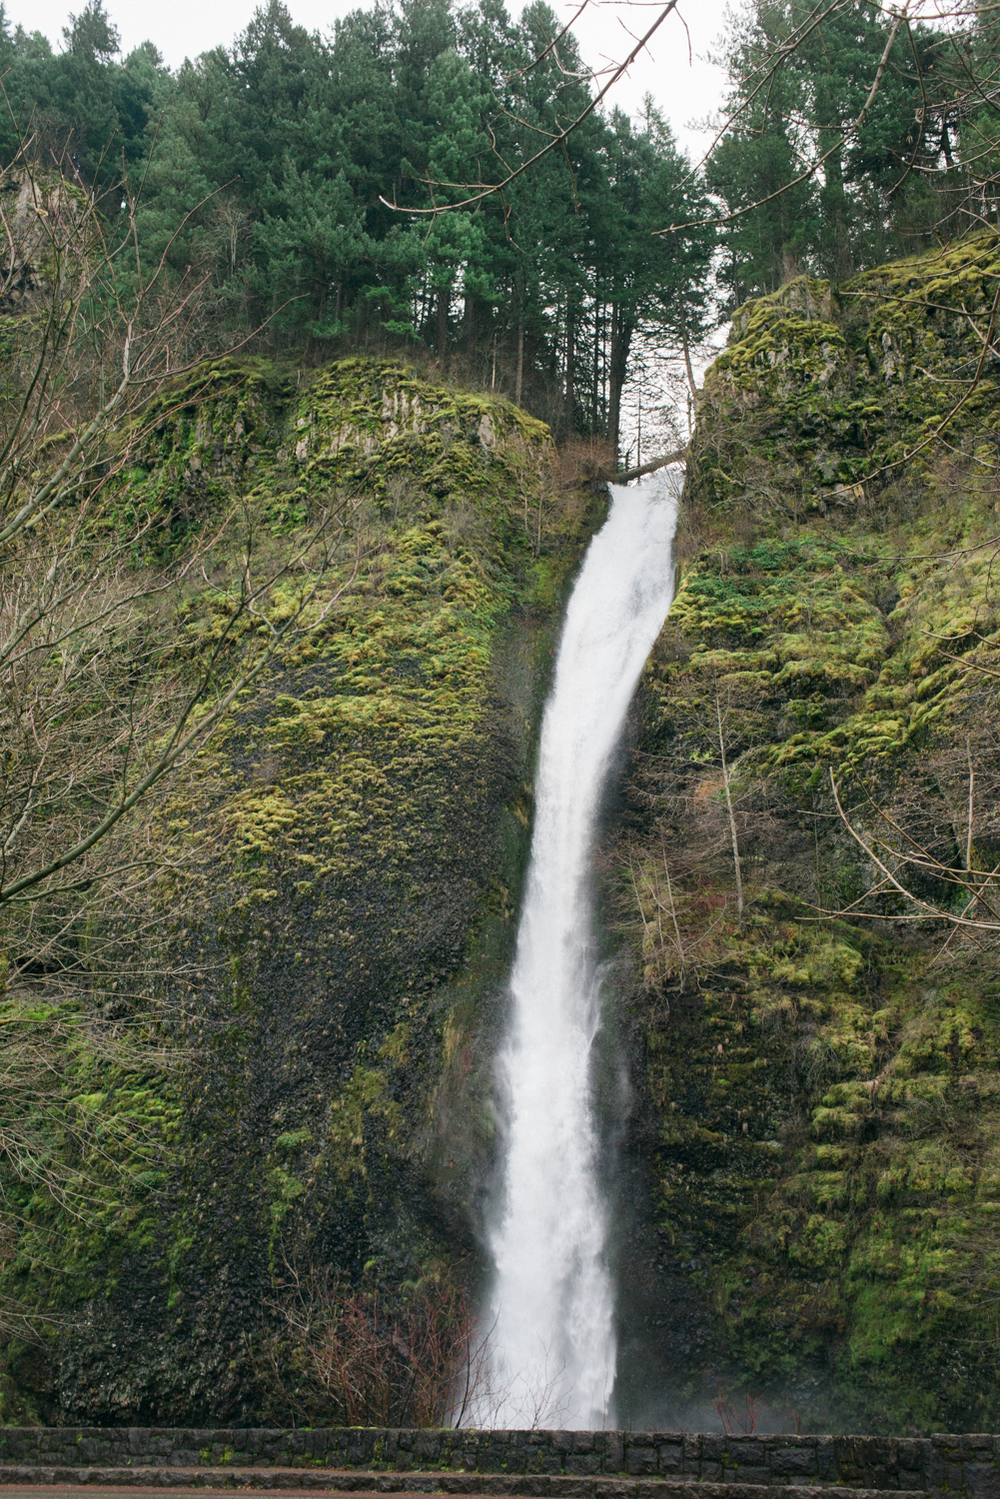 valentines-day-2015-waterfalls-portland-oregon-shelley-marie-photo.jpg